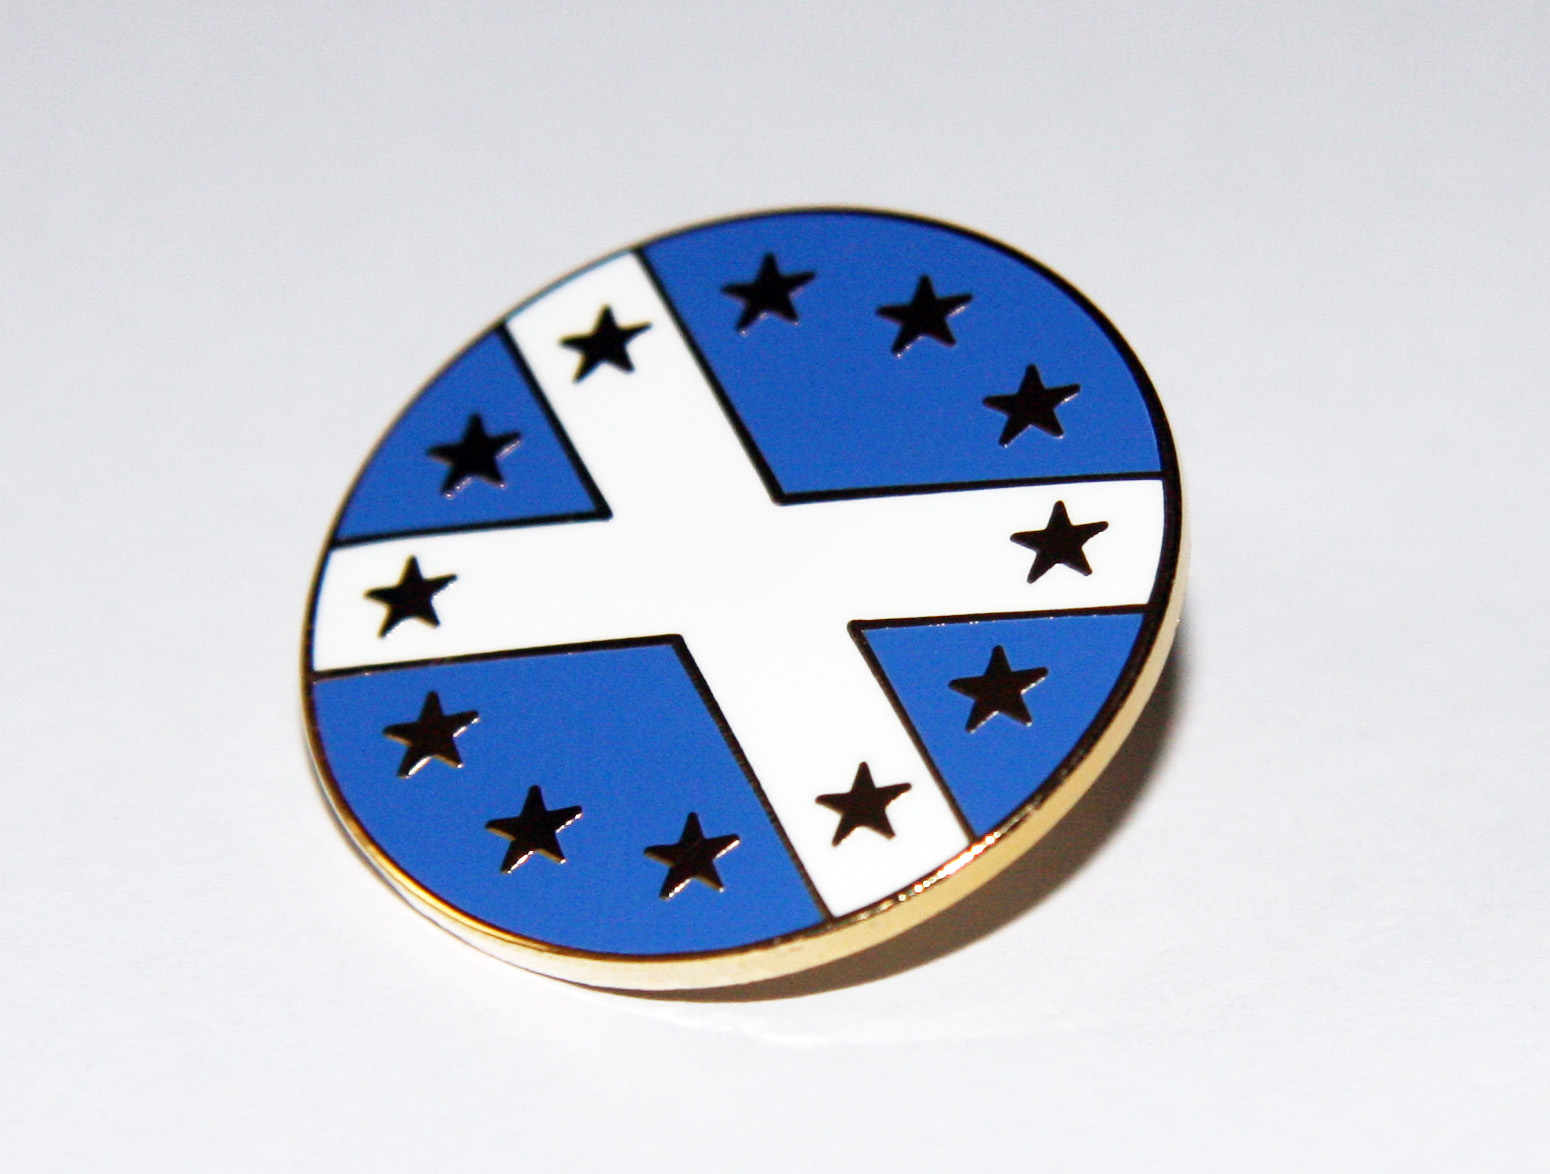 Gold EU Saltire lapel badge